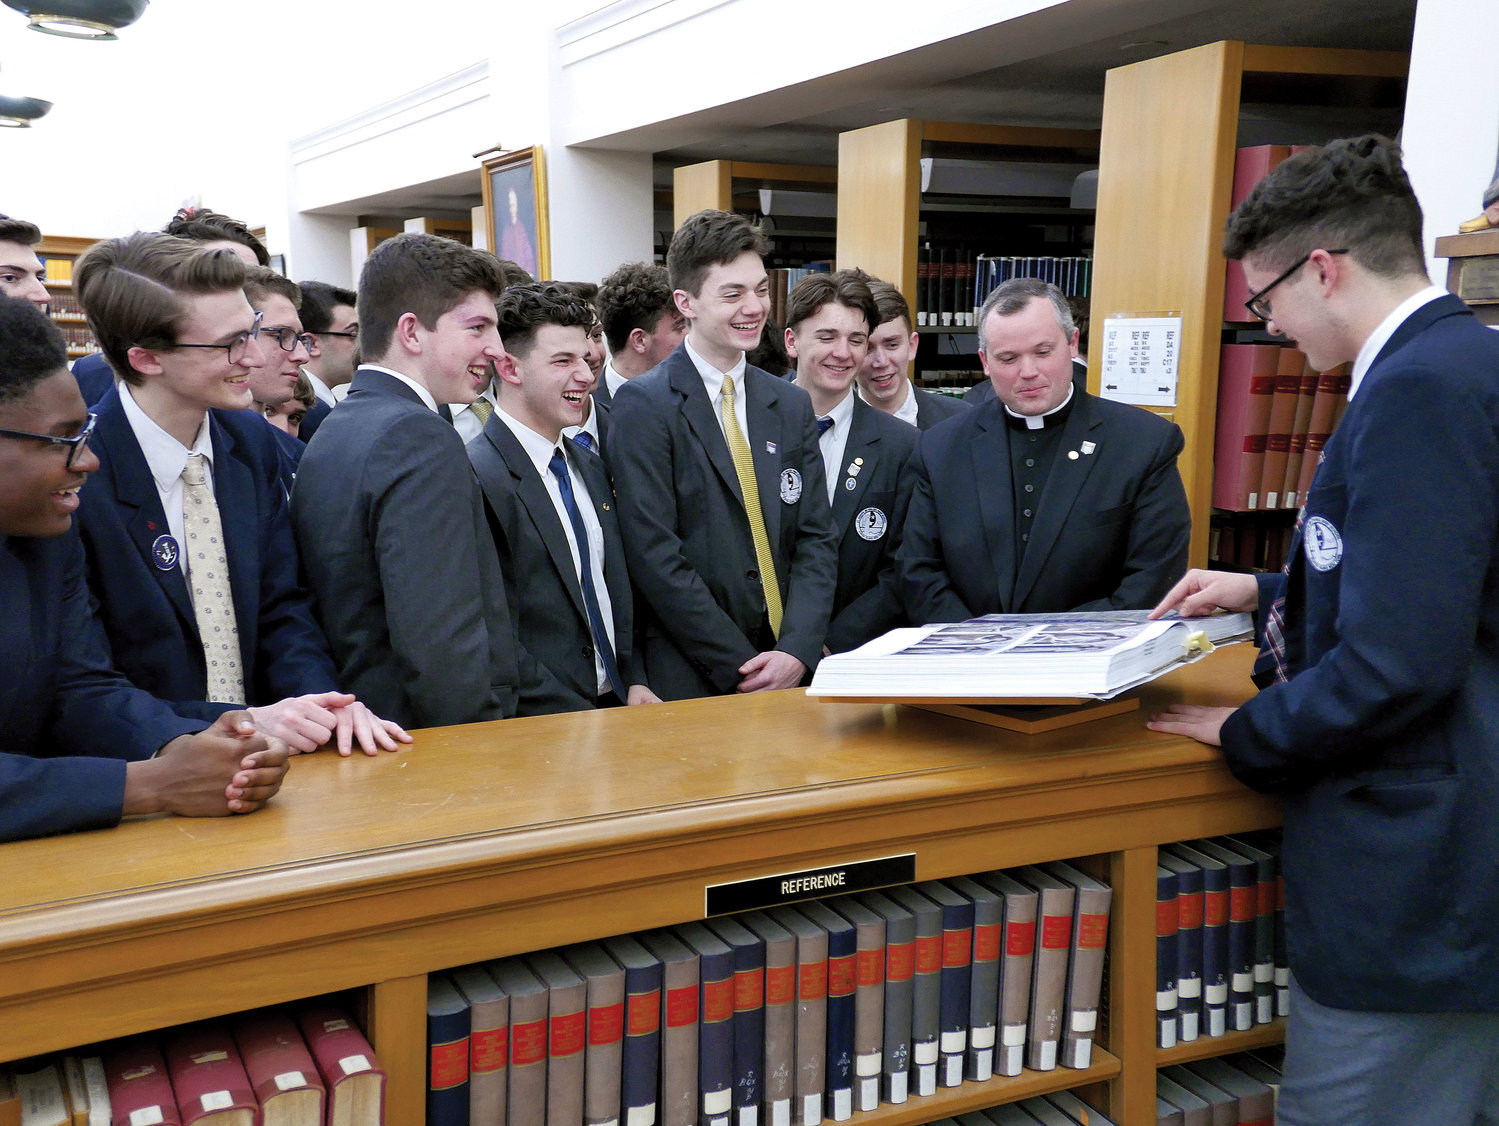 St. Joseph by-the-Sea High School students check out a book with school chaplain Father John McCarthy in the library at St. Joseph's Seminary in Dunwoodie March 21. Students toured the seminary as part of an Evening for Vocations. Forty-seven guests from St. Joseph by-the-Sea attended.